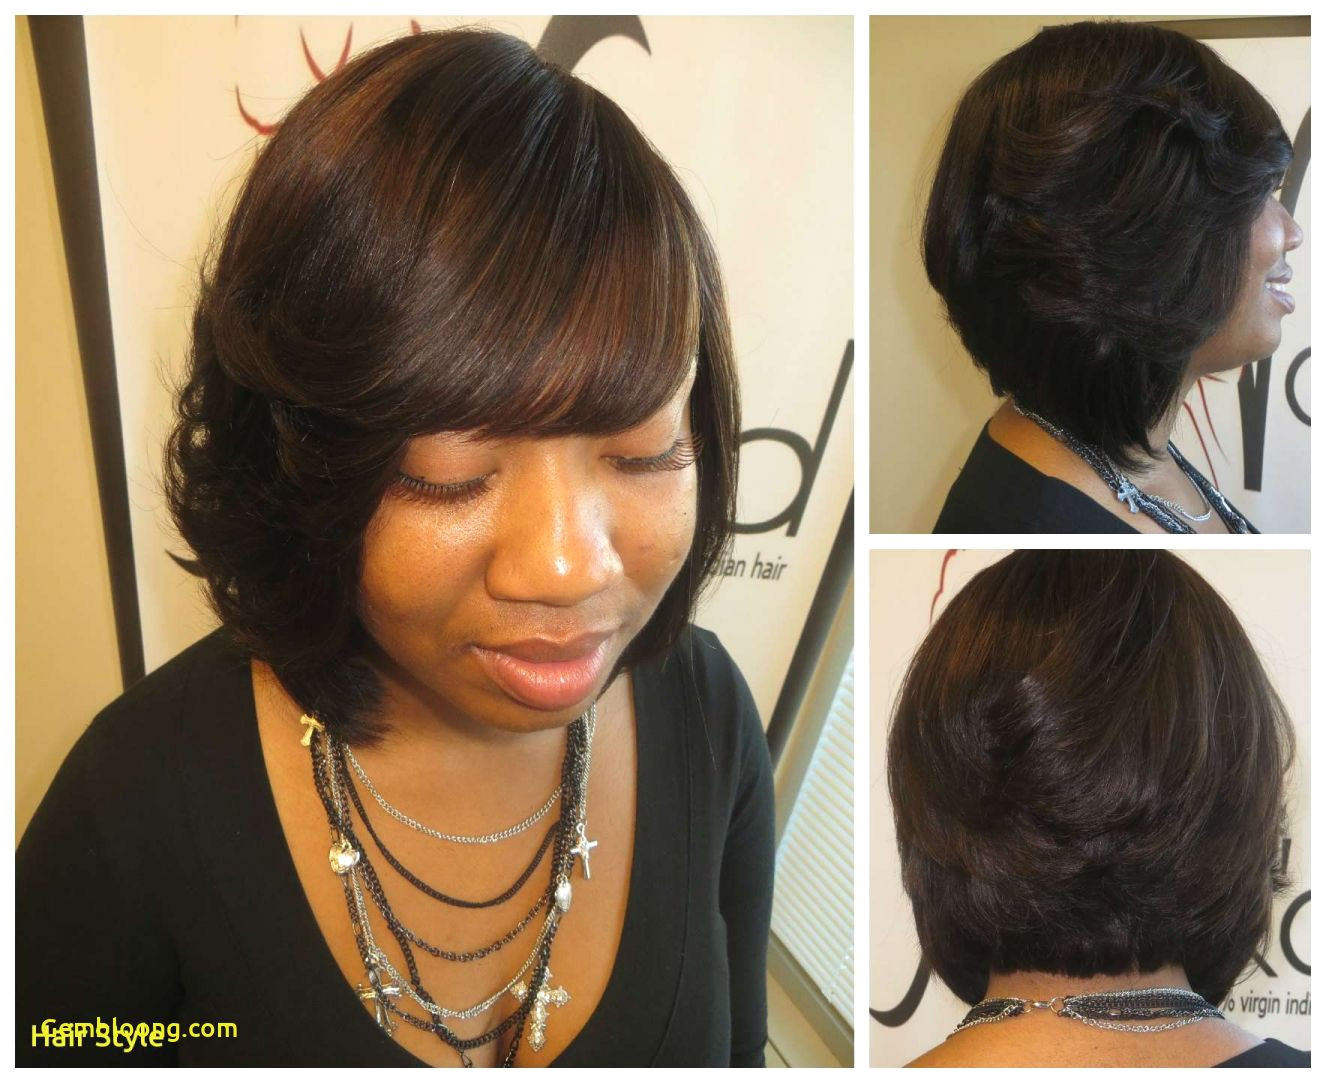 groove of weave in a bob hairstyle